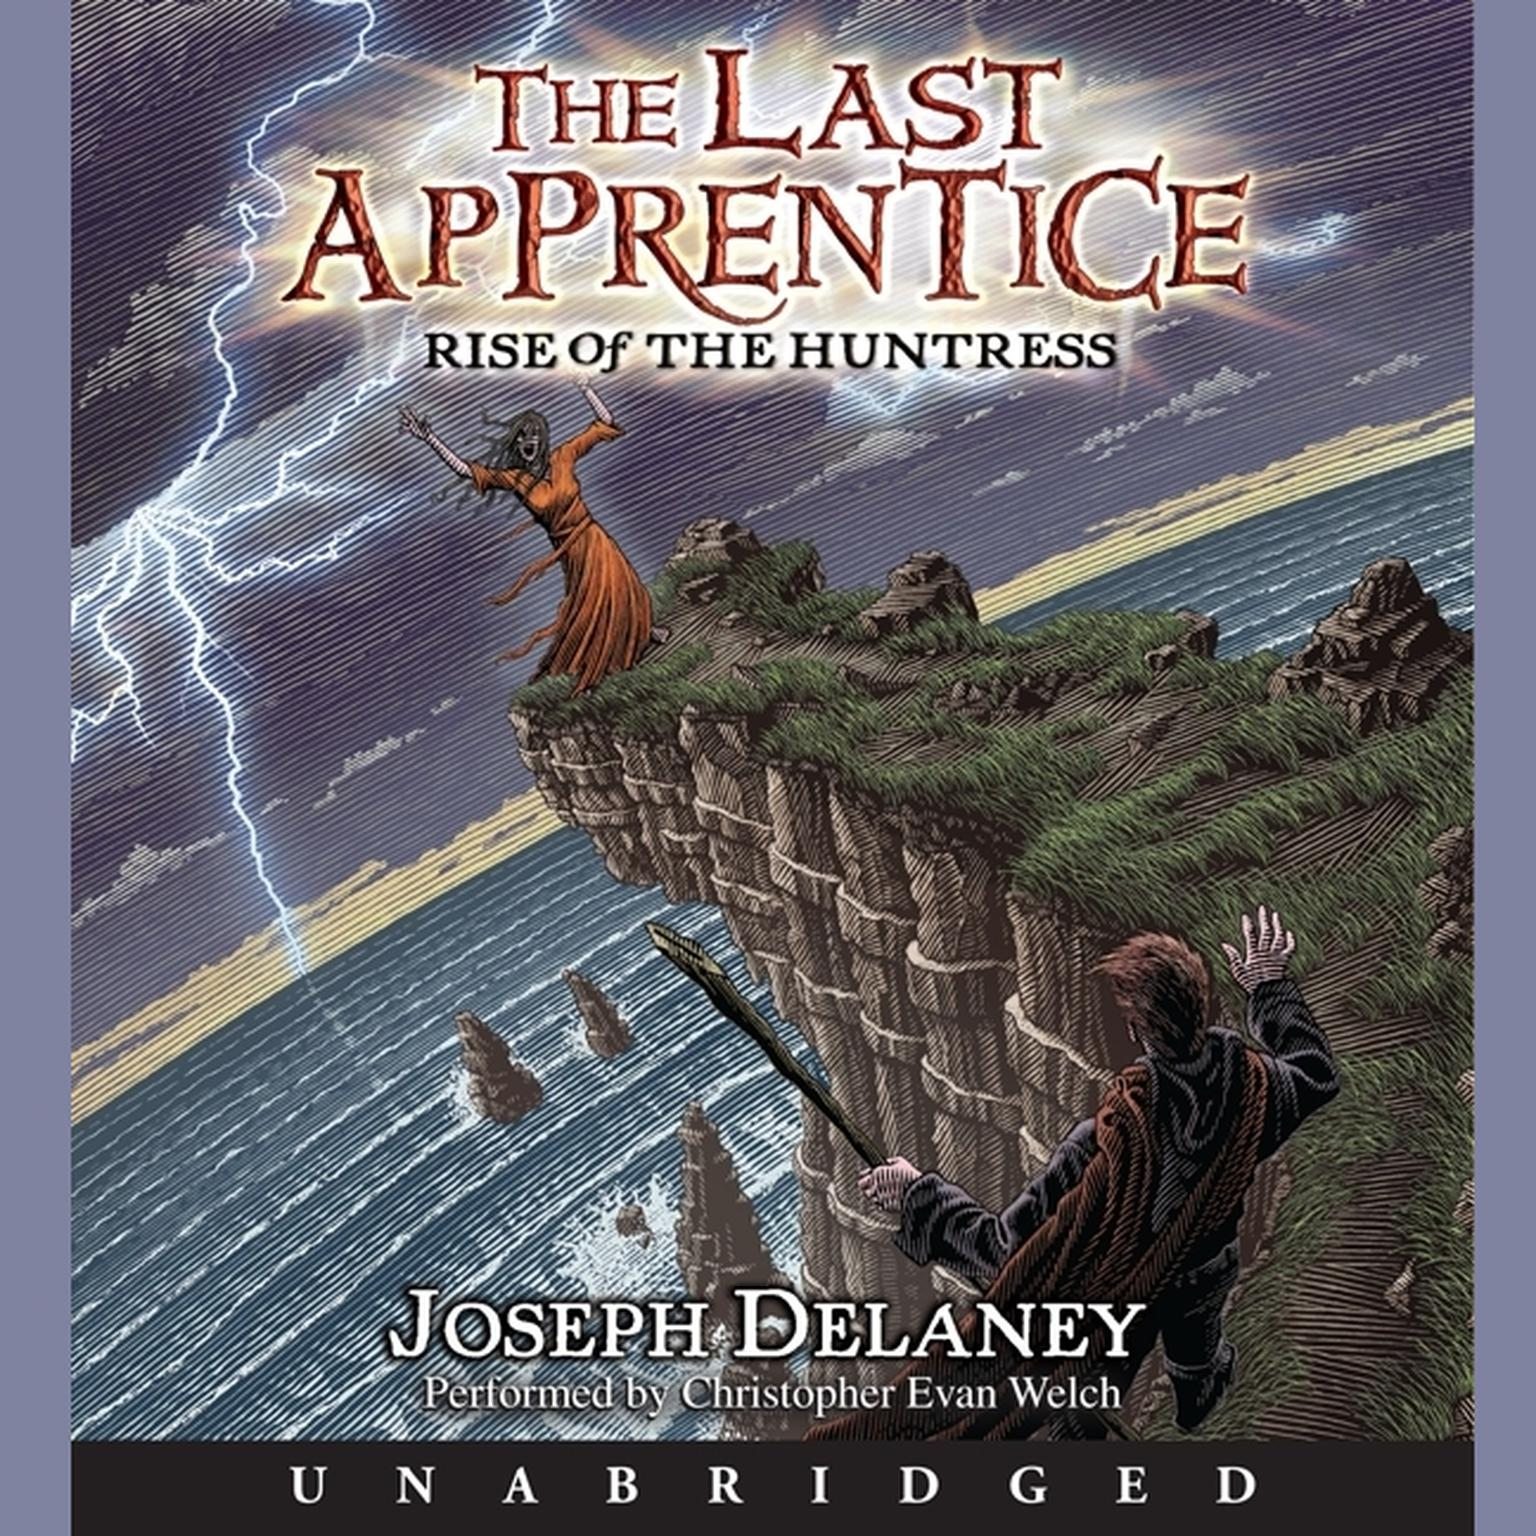 Printable The Last Apprentice: Rise of the Huntress (Book 7) Audiobook Cover Art